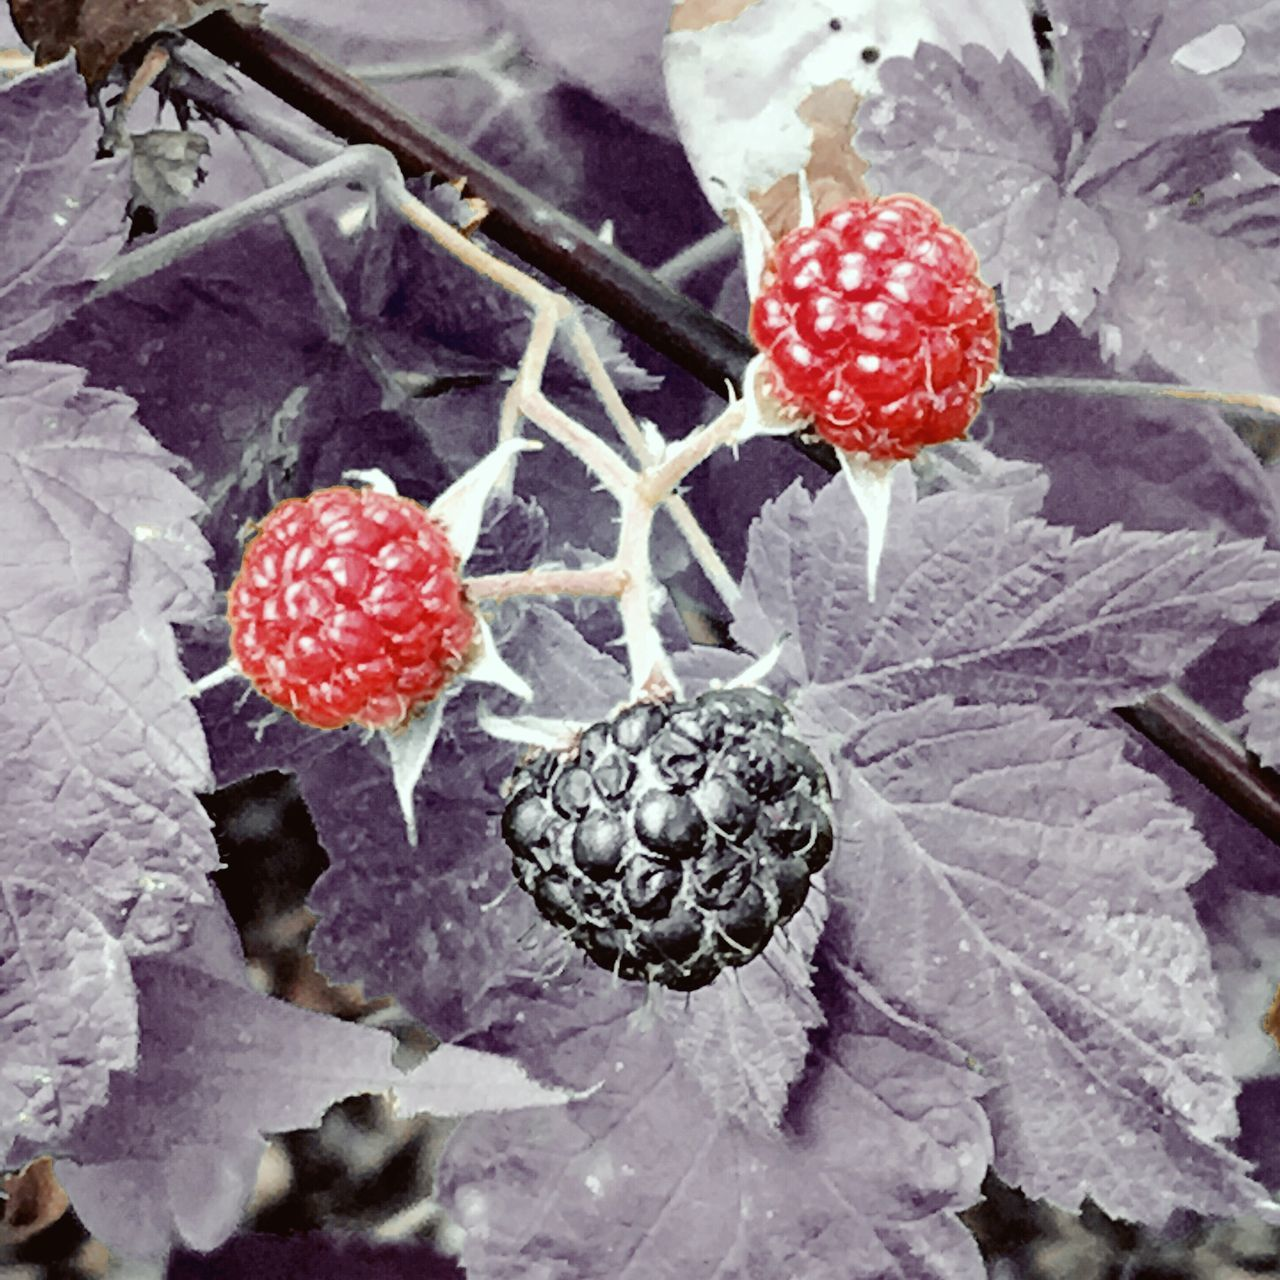 Fruit Growth Freshness Red Close-up Nature Beauty In Nature No People Food And Drink Frozen Day Outdoors Plant Food